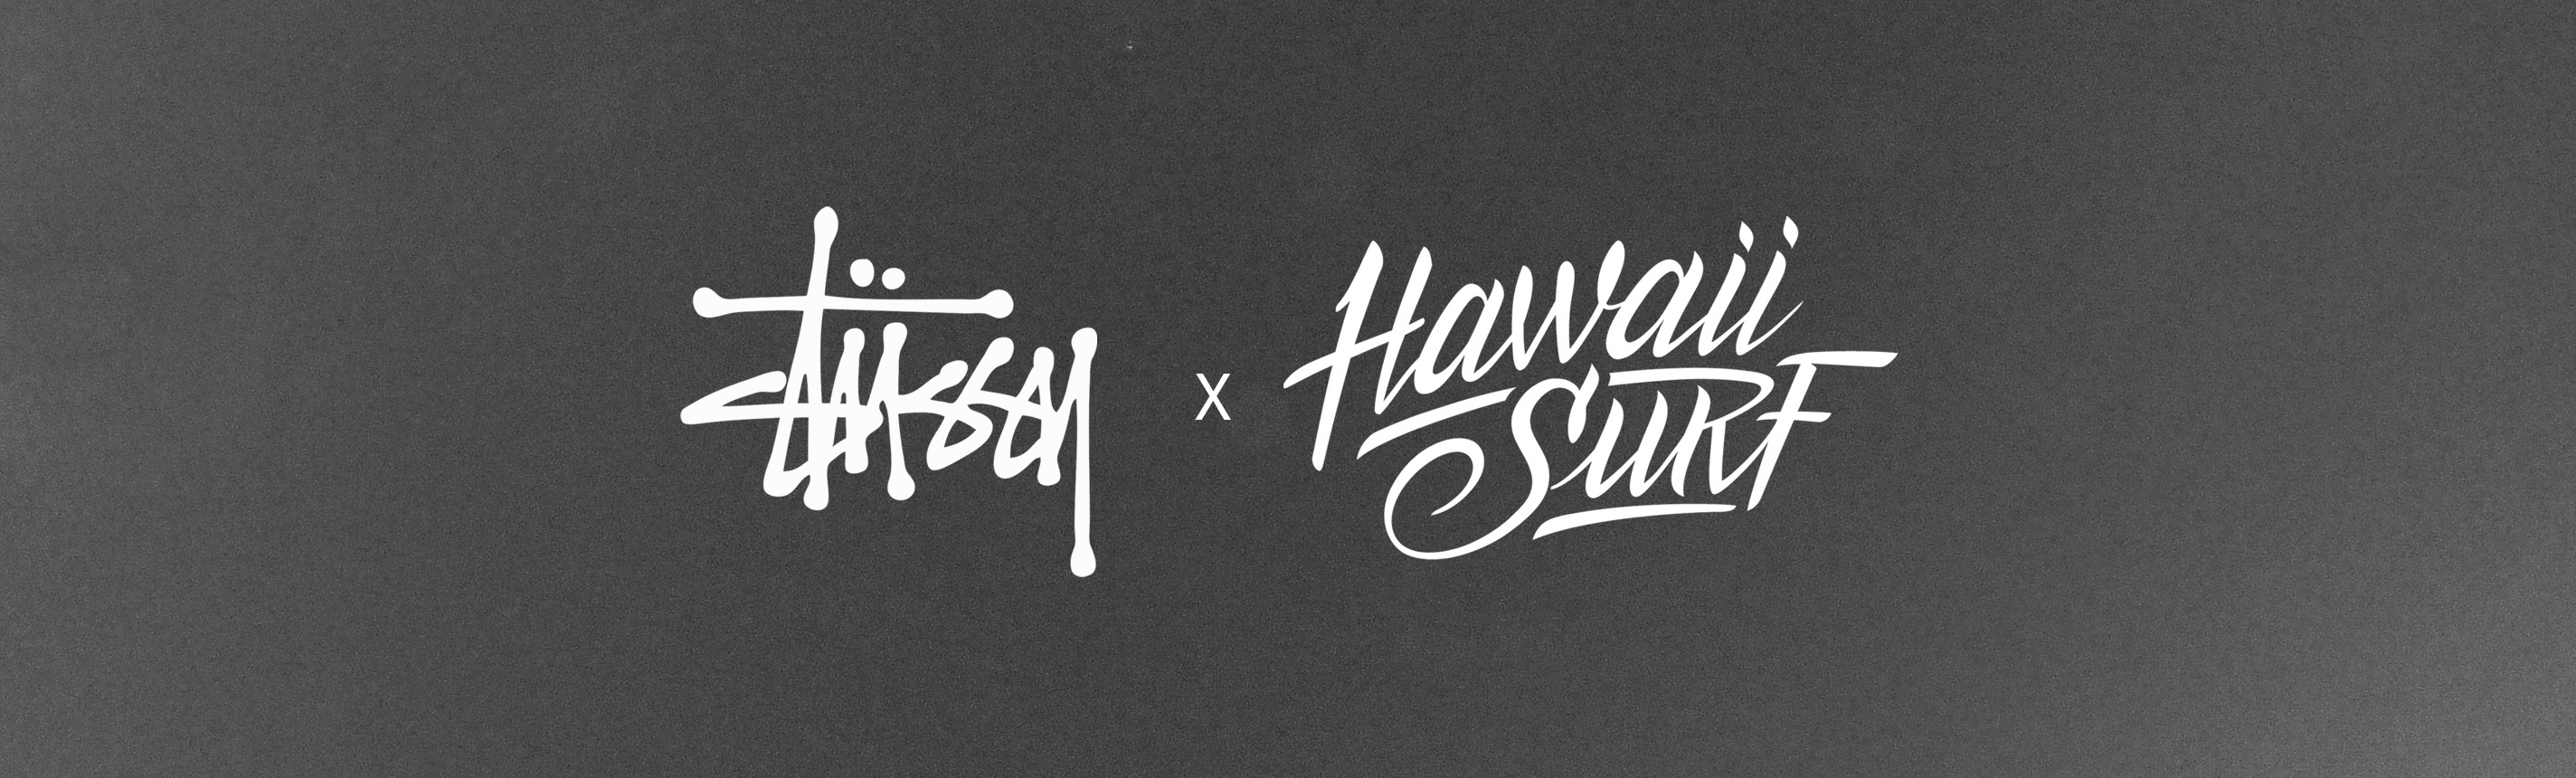 soiree stussy x hawaiisurf vendredi 13 avril 2018 paris